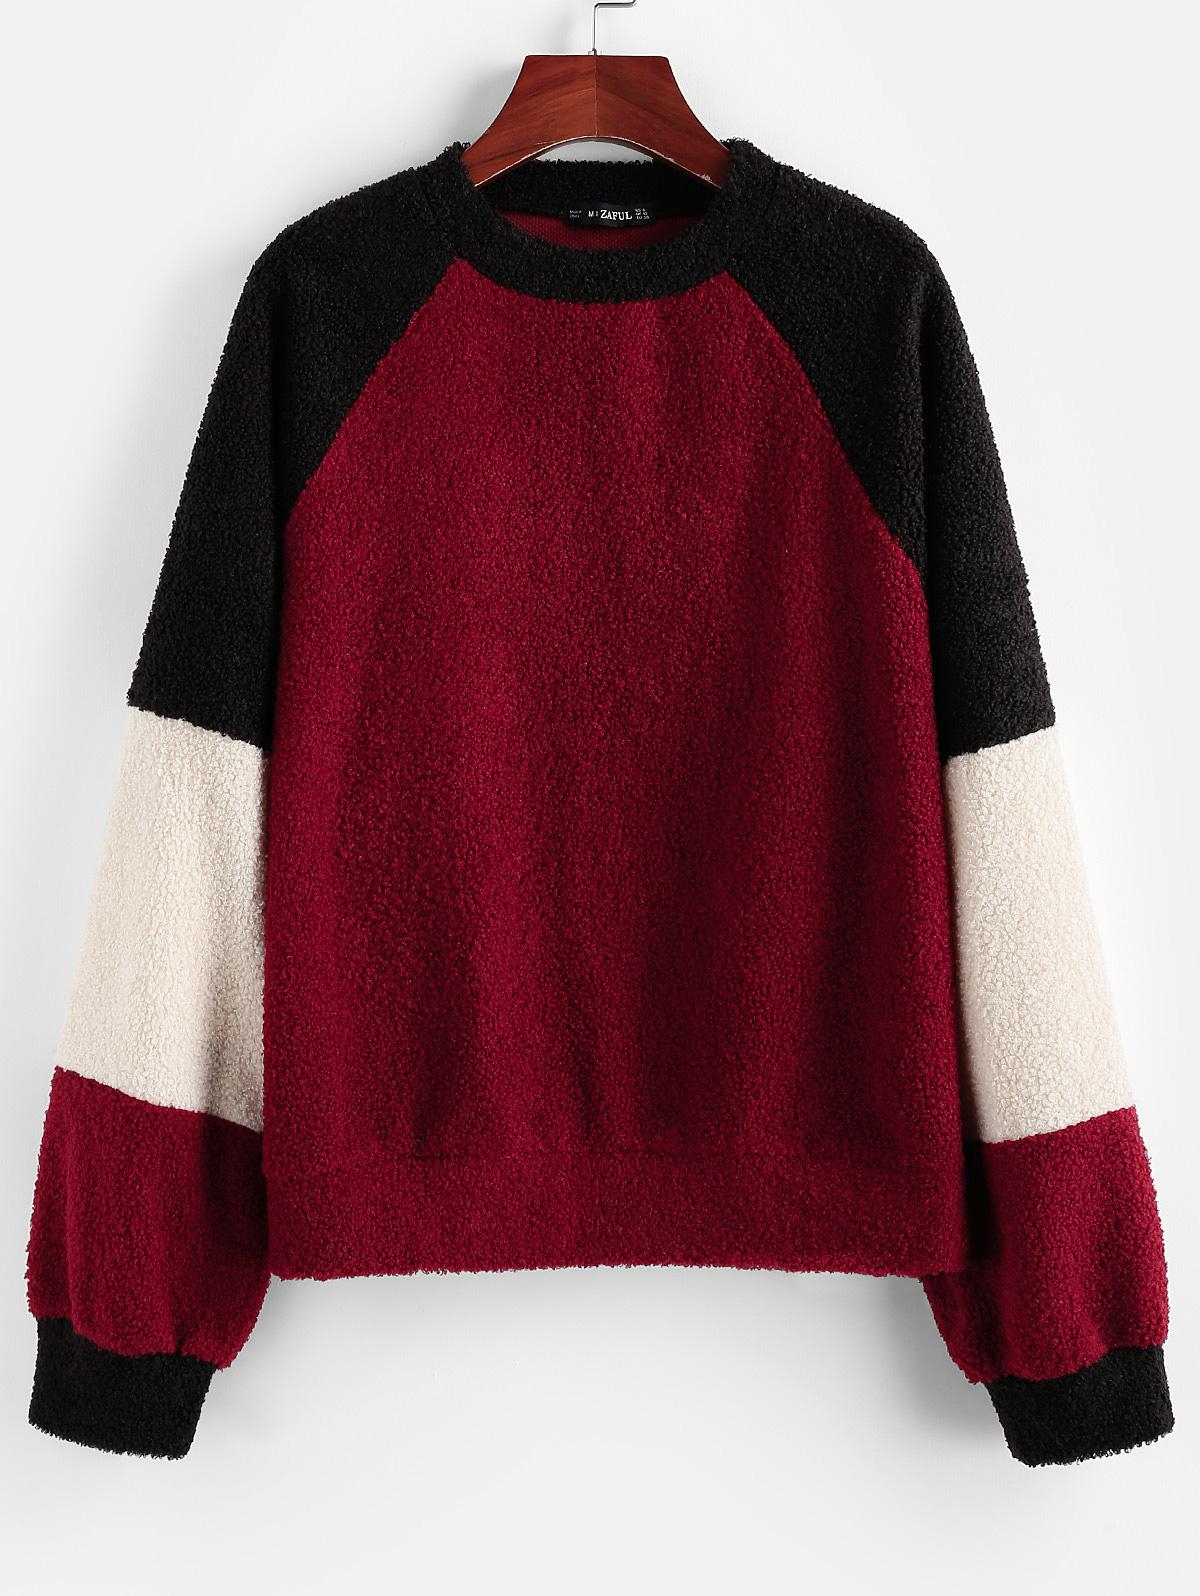 ZAFUL Colorblock Teddy Sweatshirt